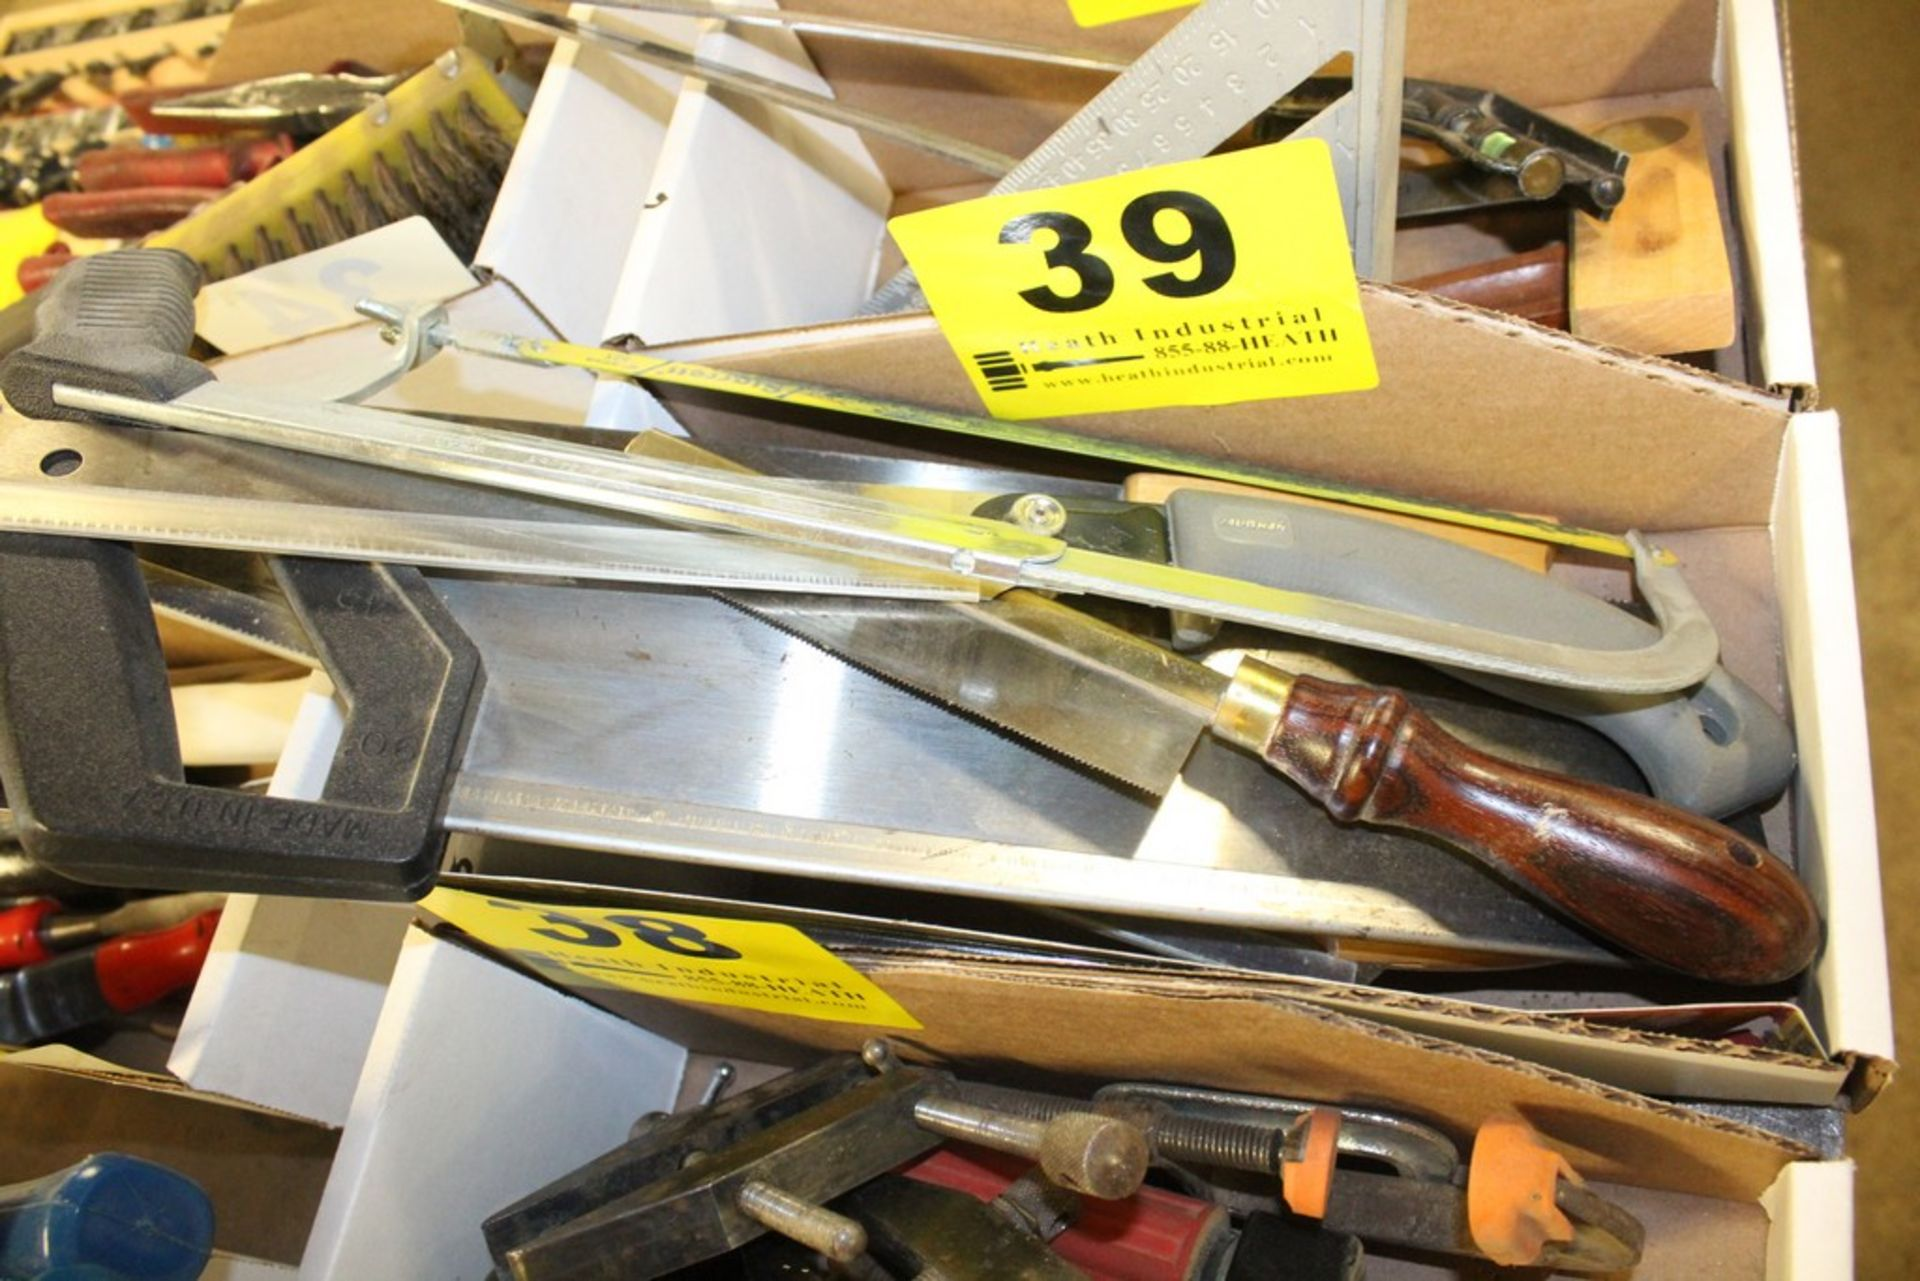 Lot 39 - ASSORTED HAND SAWS IN BOX